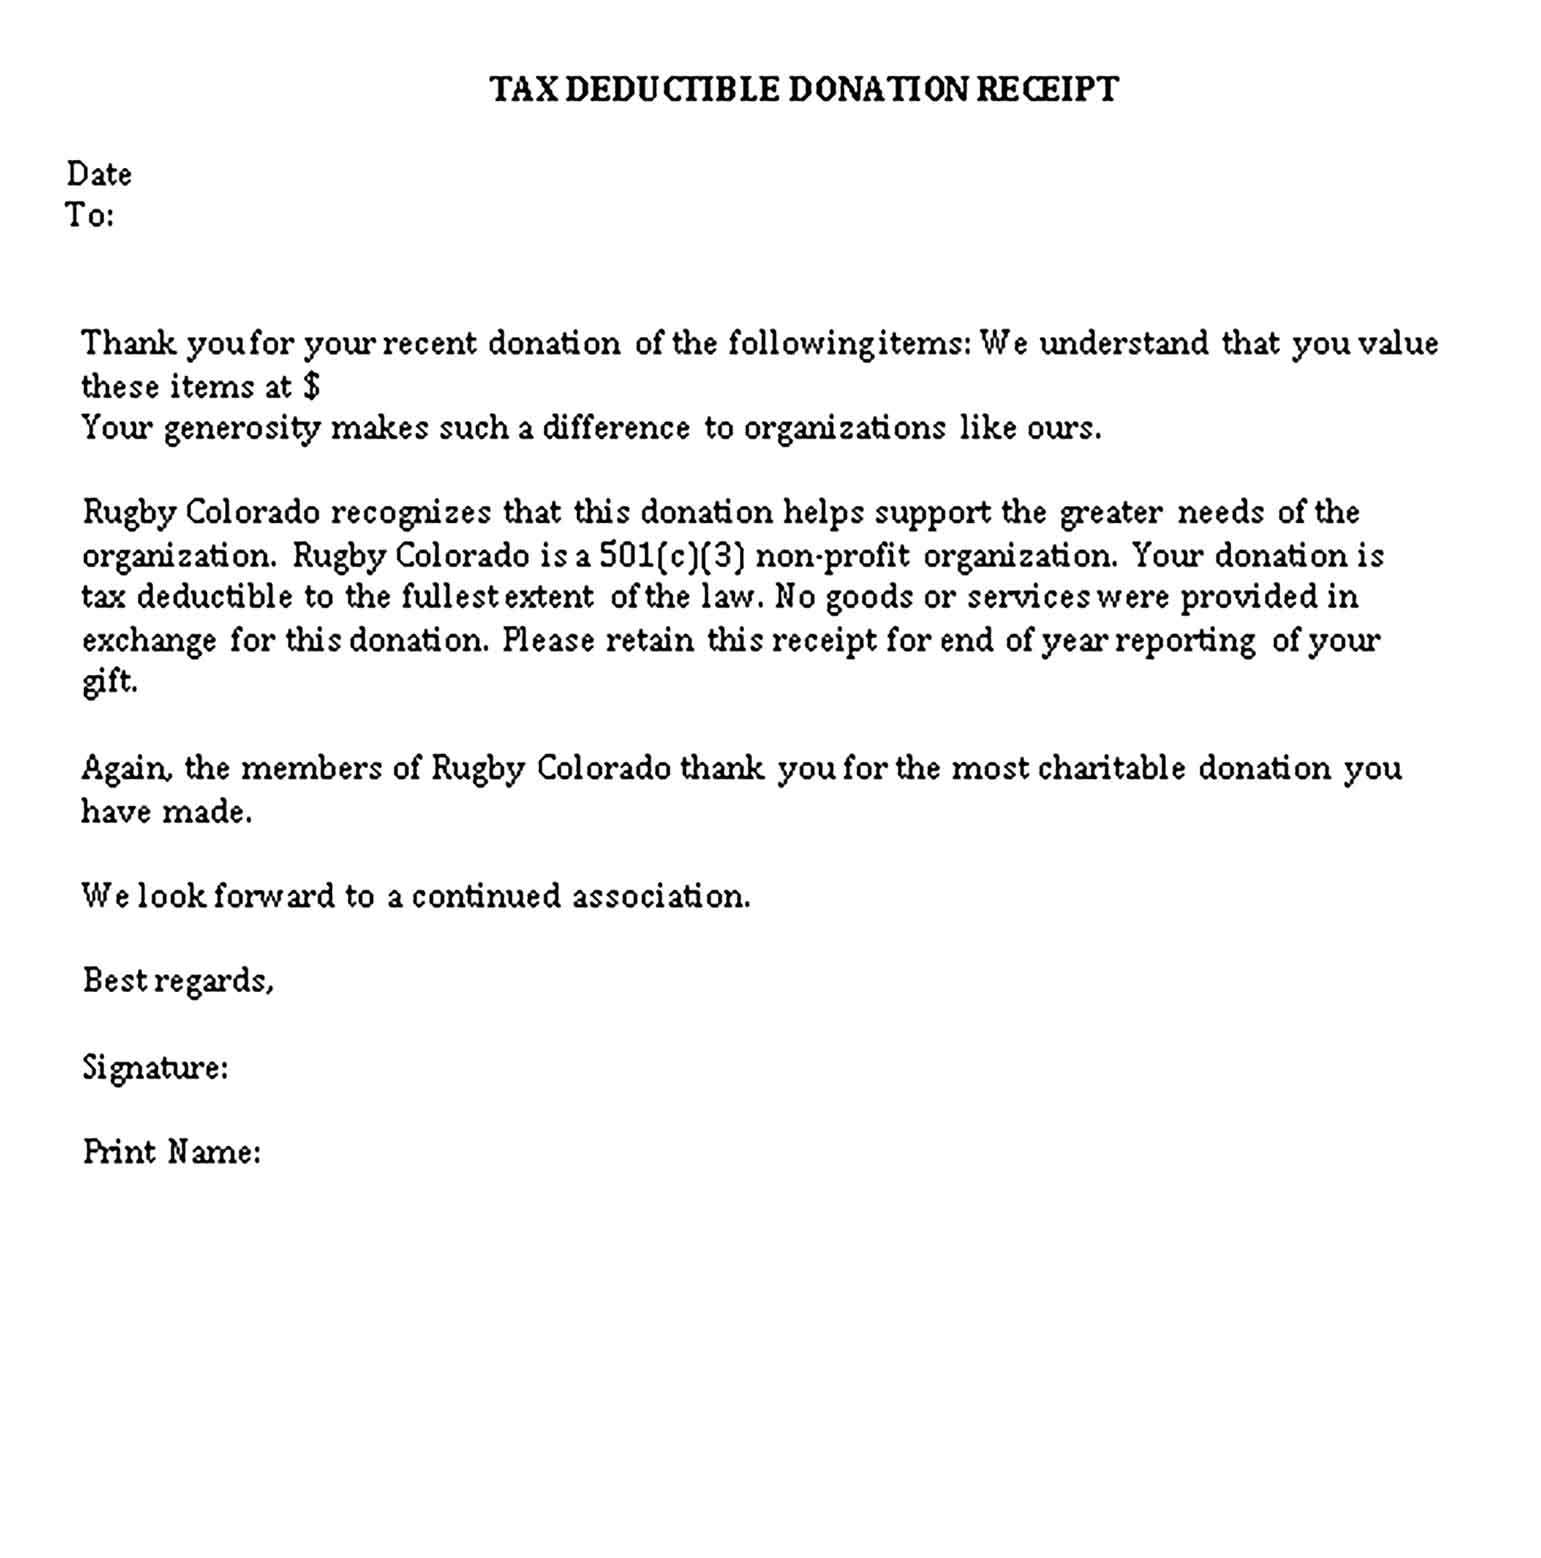 Sample Tax Deductible Donation Receipt MS Word 1 Templates